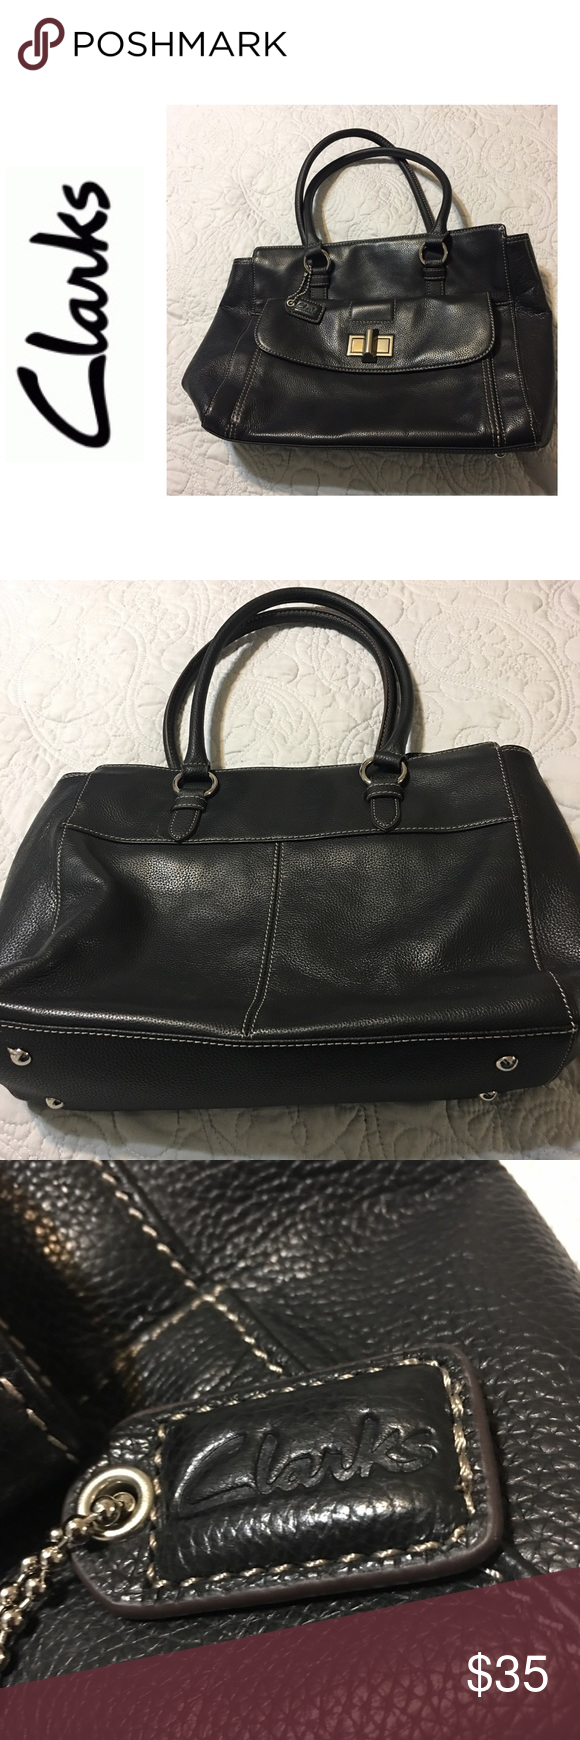 Clarks Large Leather Tote Genuine Leather Large Tote 4